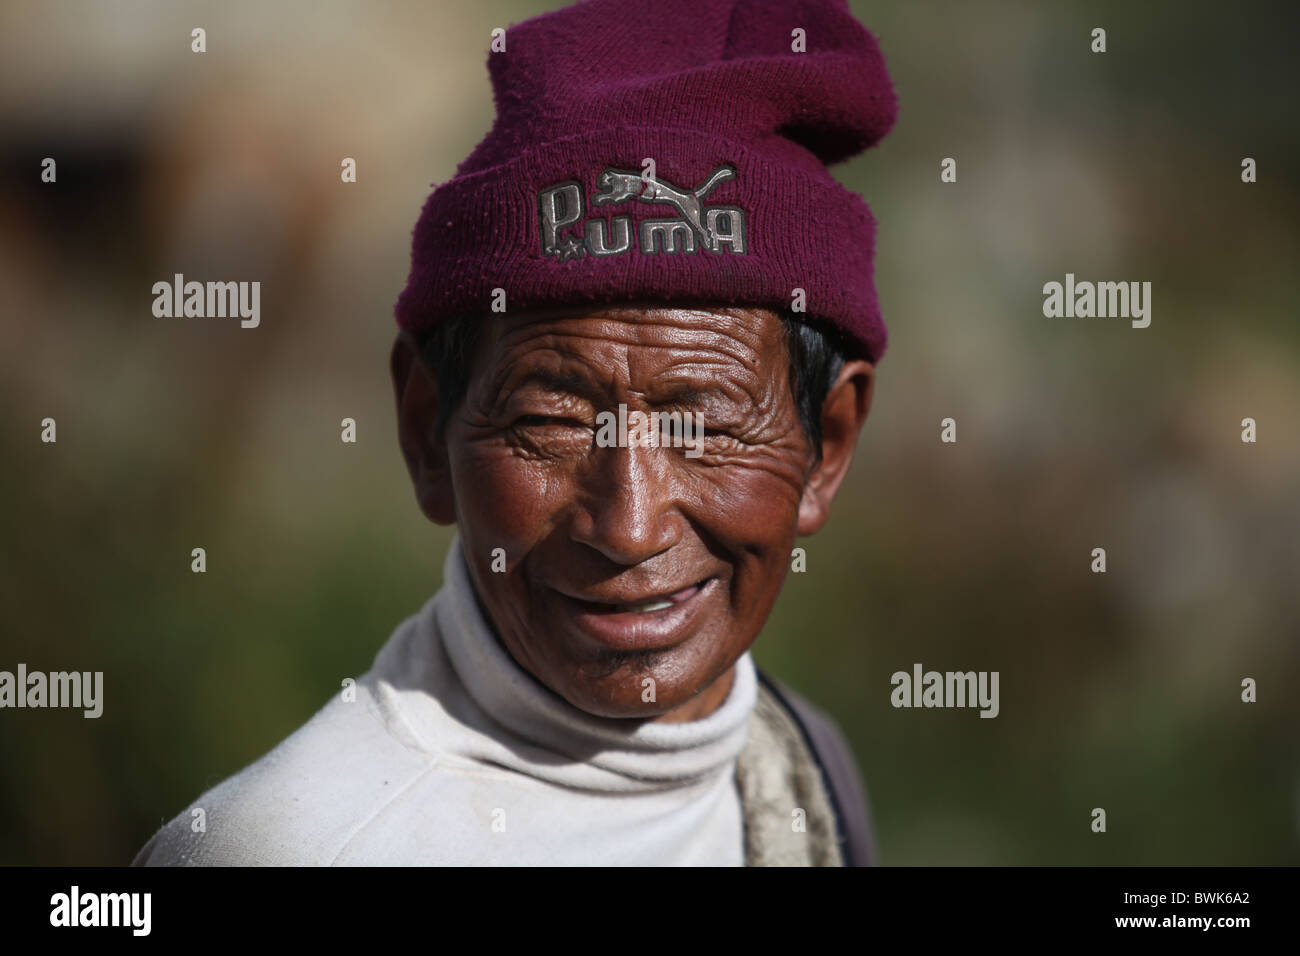 A smiling local man in Litang, Sichuan province, southwest China - Stock Image